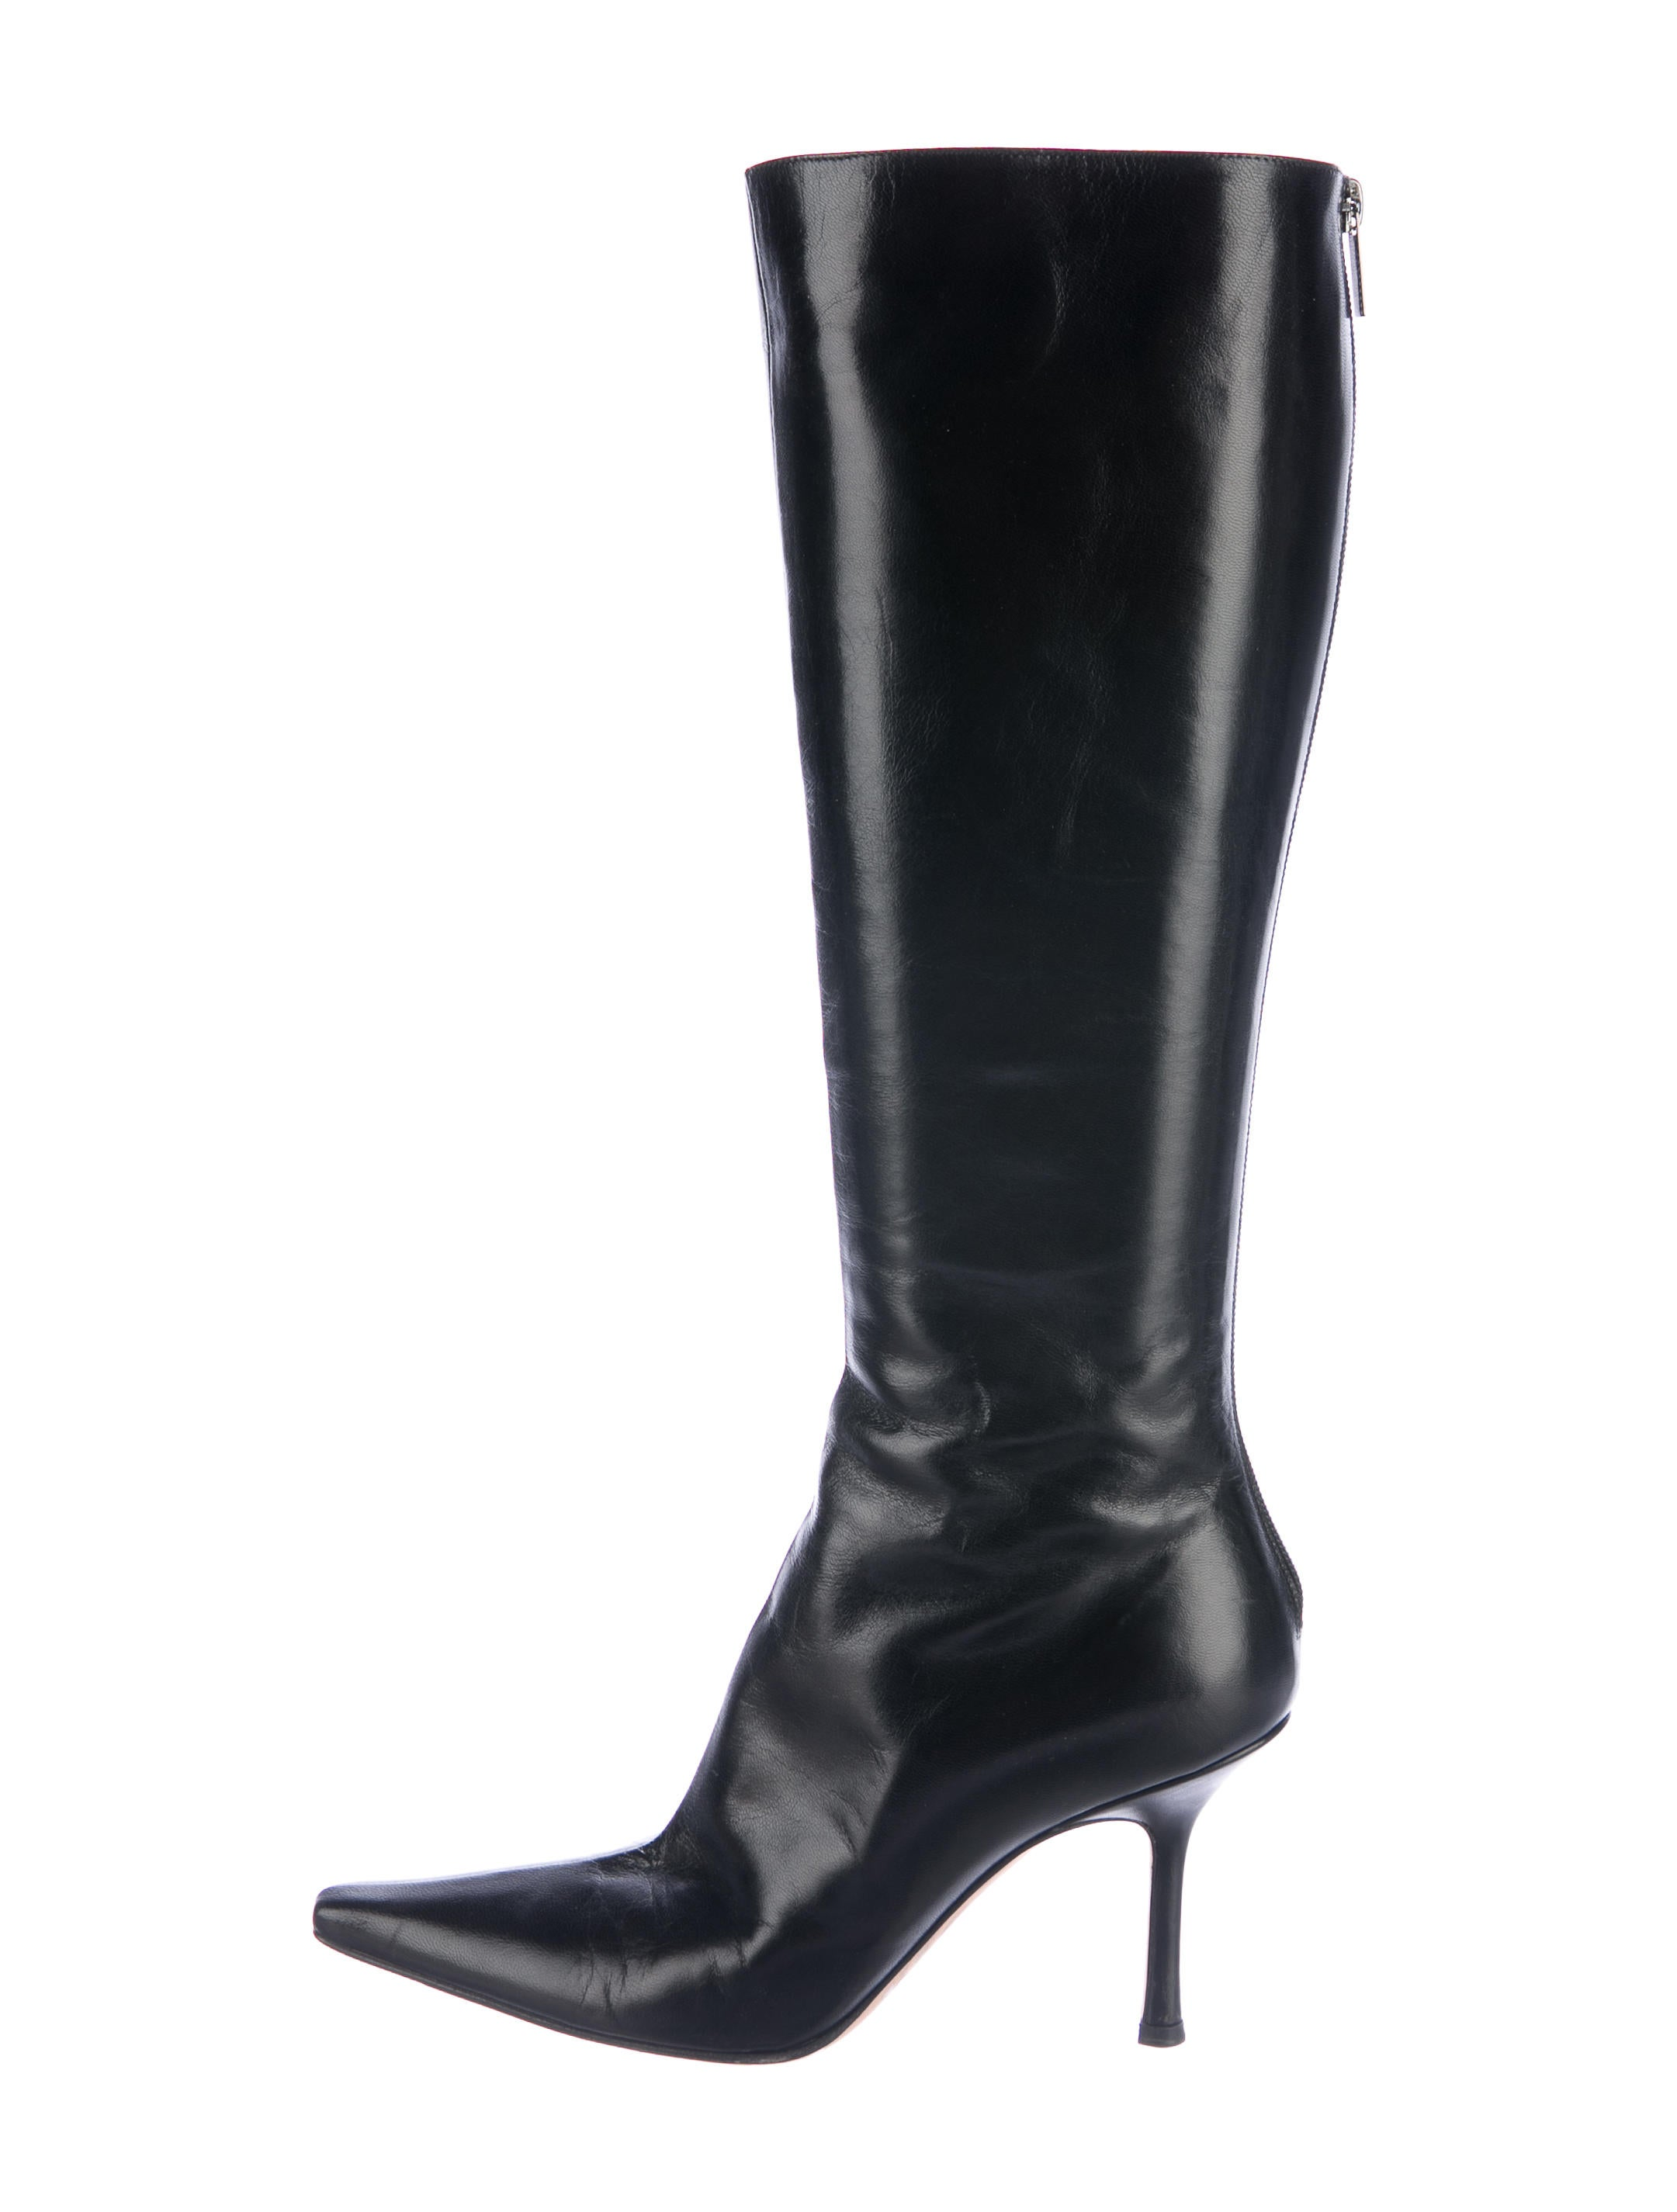 Jimmy Choo Leather Knee-High Boots - Shoes - JIM70054 ...